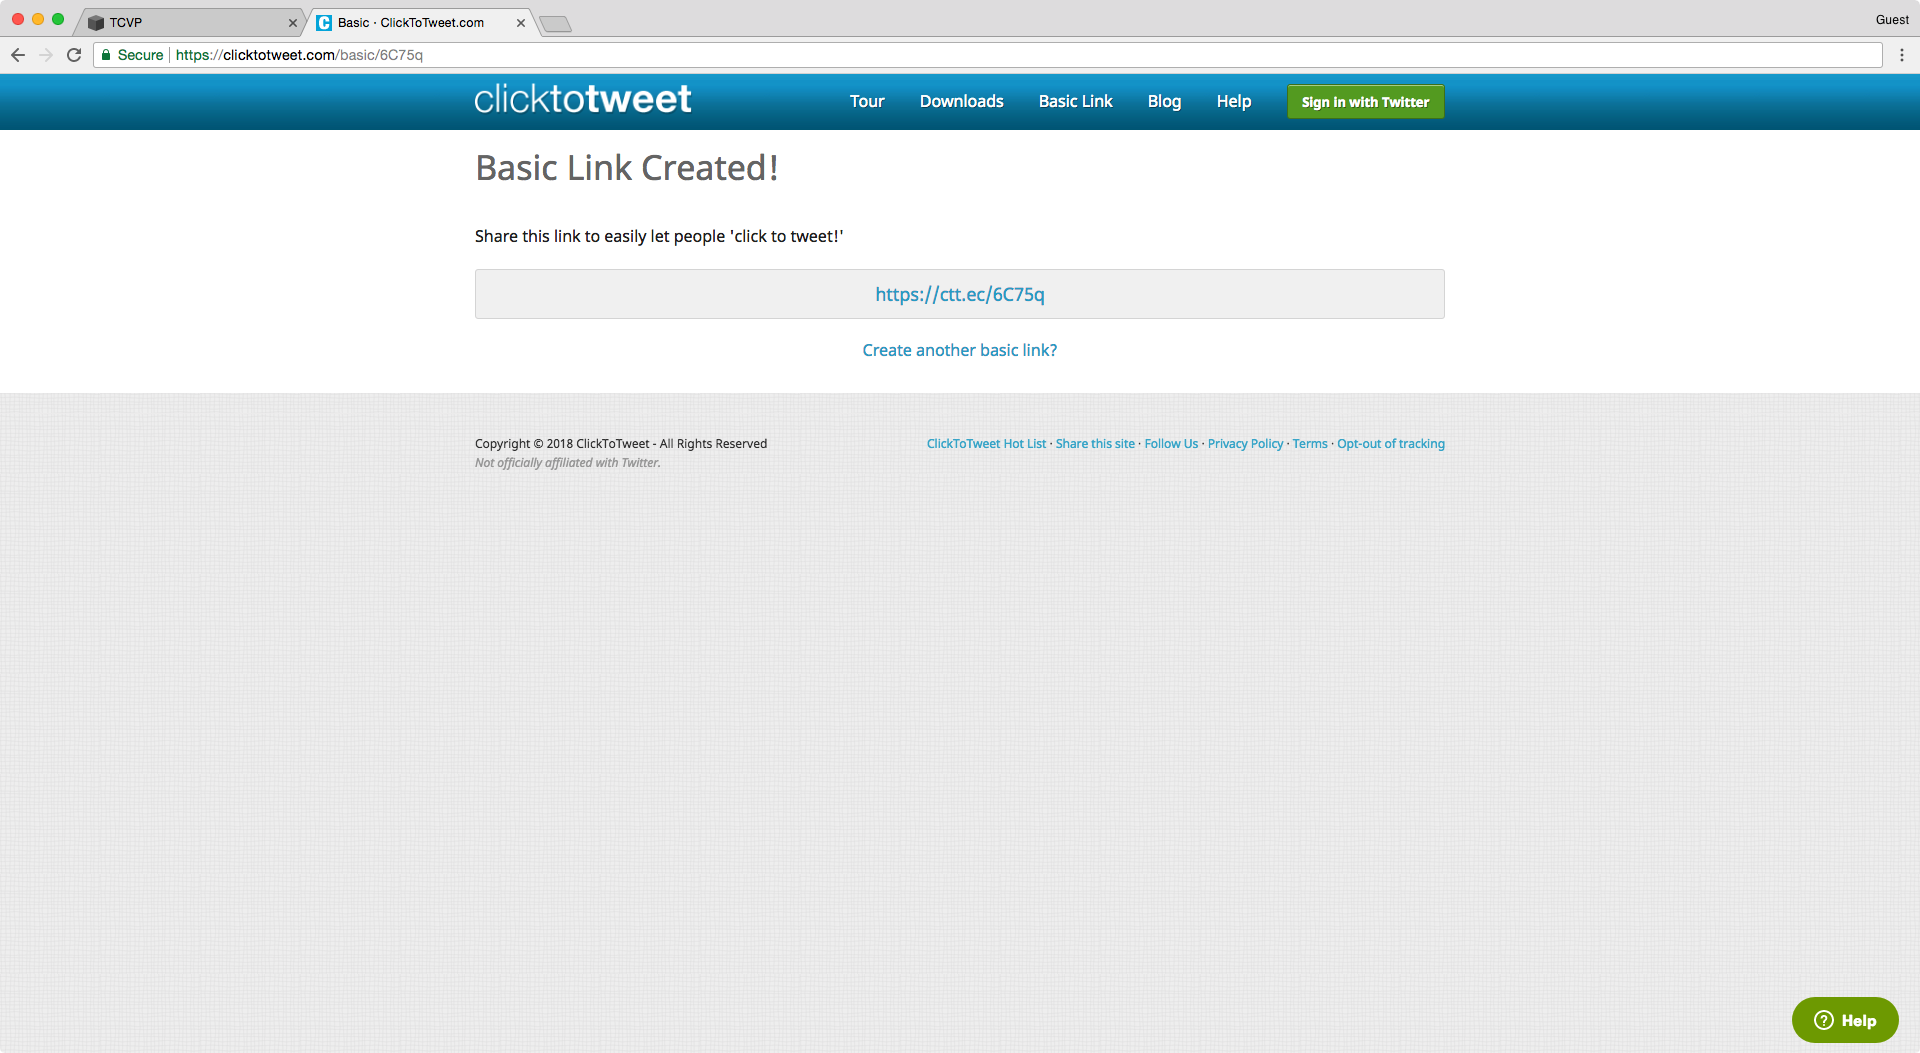 Basic link created for a click to tweet in Squarespace